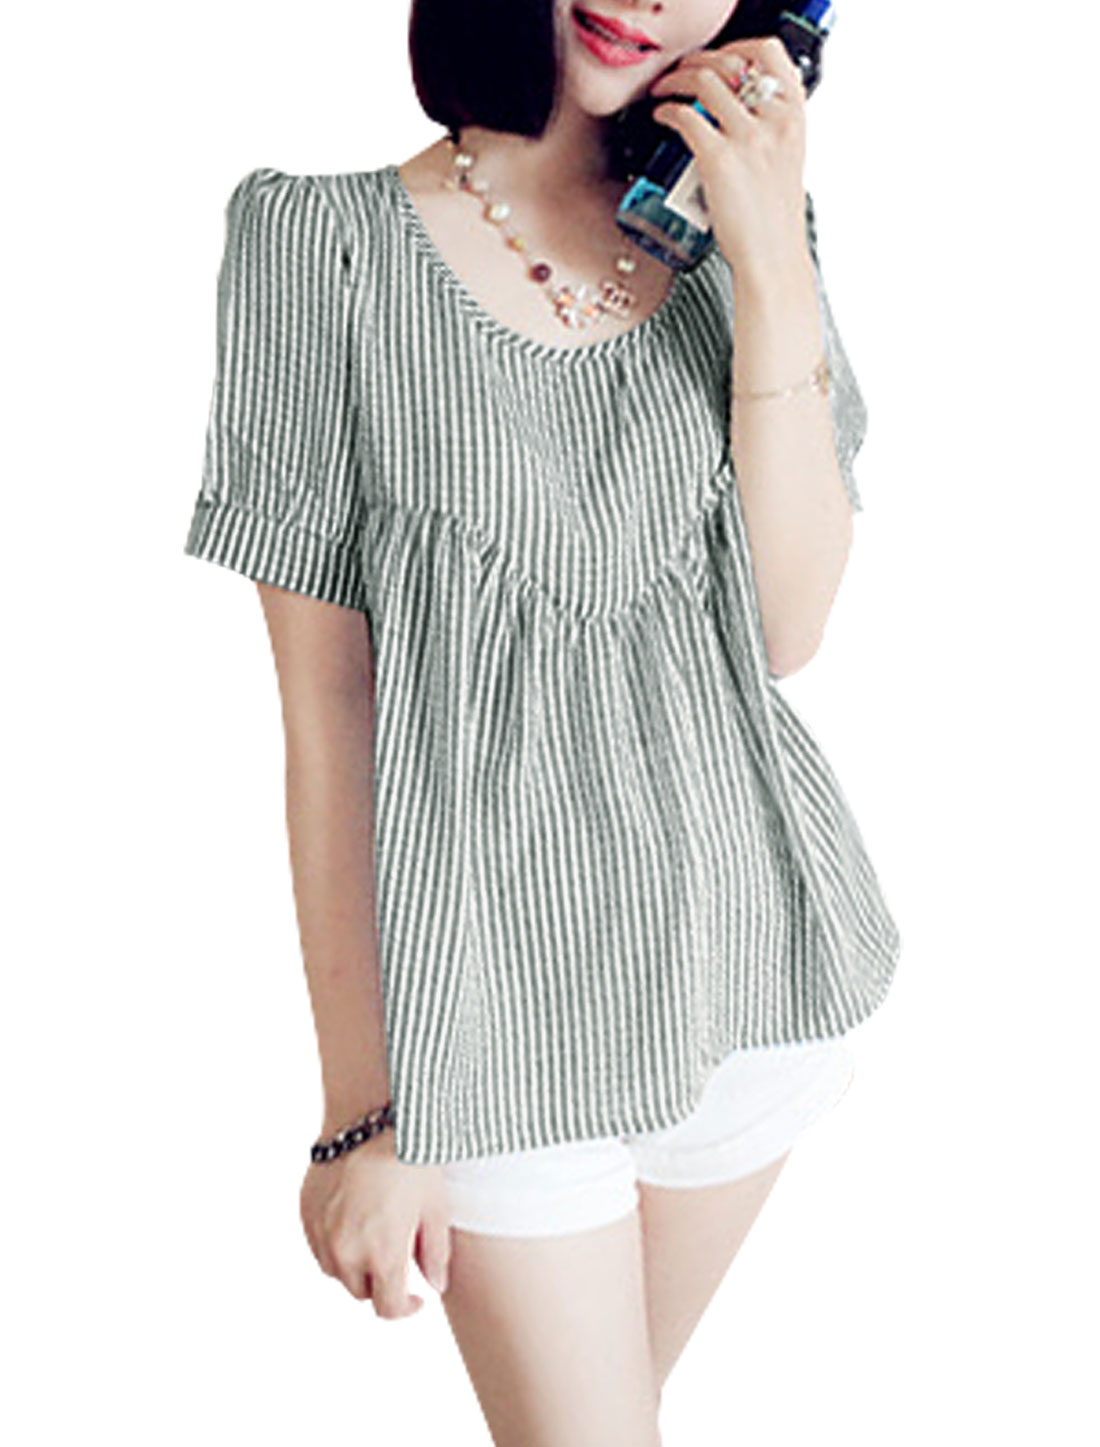 Lady Short Sleeve Stripes Plaids Design Semi Sheer Loose Top White Black XS